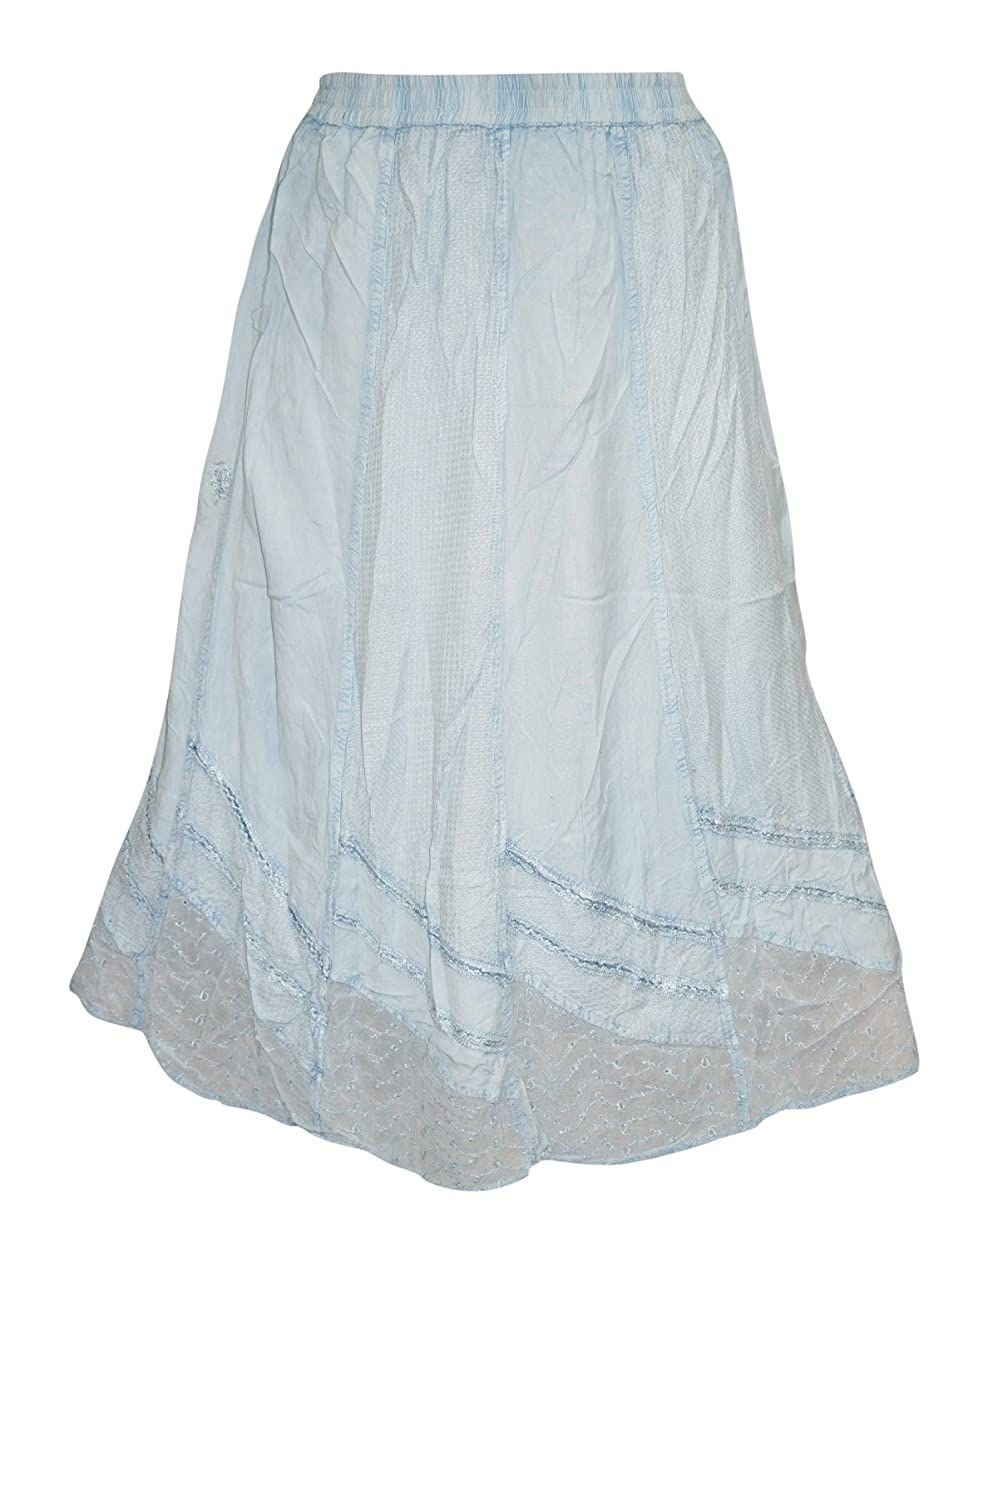 Mogul Interior Skirt With Lace Embroidered Trim And Detailed Embroidery Medium